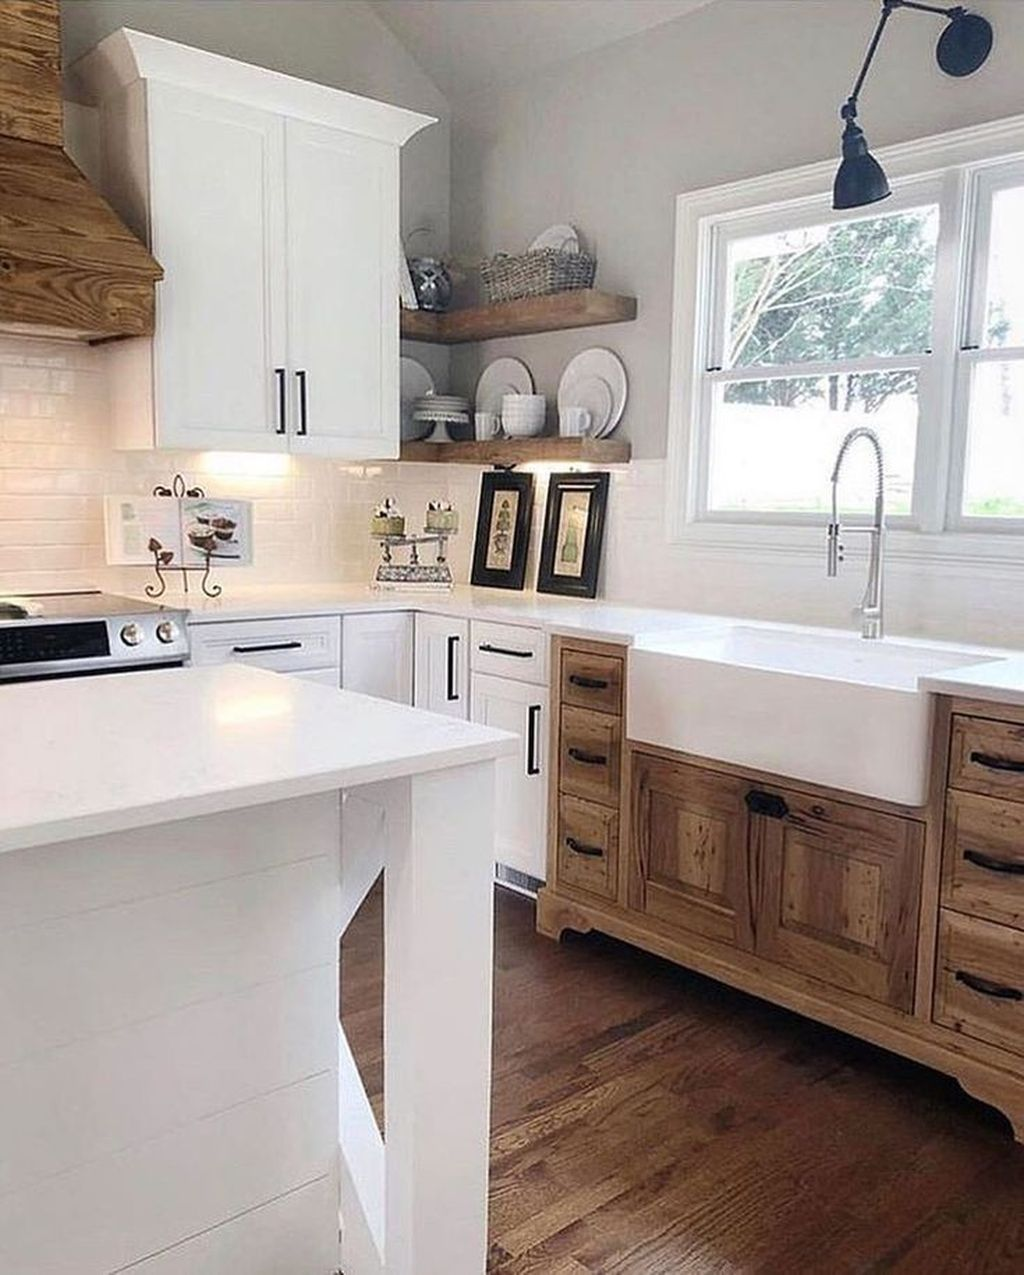 30+ Awesome Farmhouse Kitchen Design Ideas - Country kitchen farmhouse, Farmhouse kitchen countertops, Modern farmhouse kitchens, Farmhouse kitchen design, Kitchen design countertops, Farmhouse kitchen decor - Farmhouse kitchen style will be perfect idea if you want to have family gathering in your kitchen during meal time  …